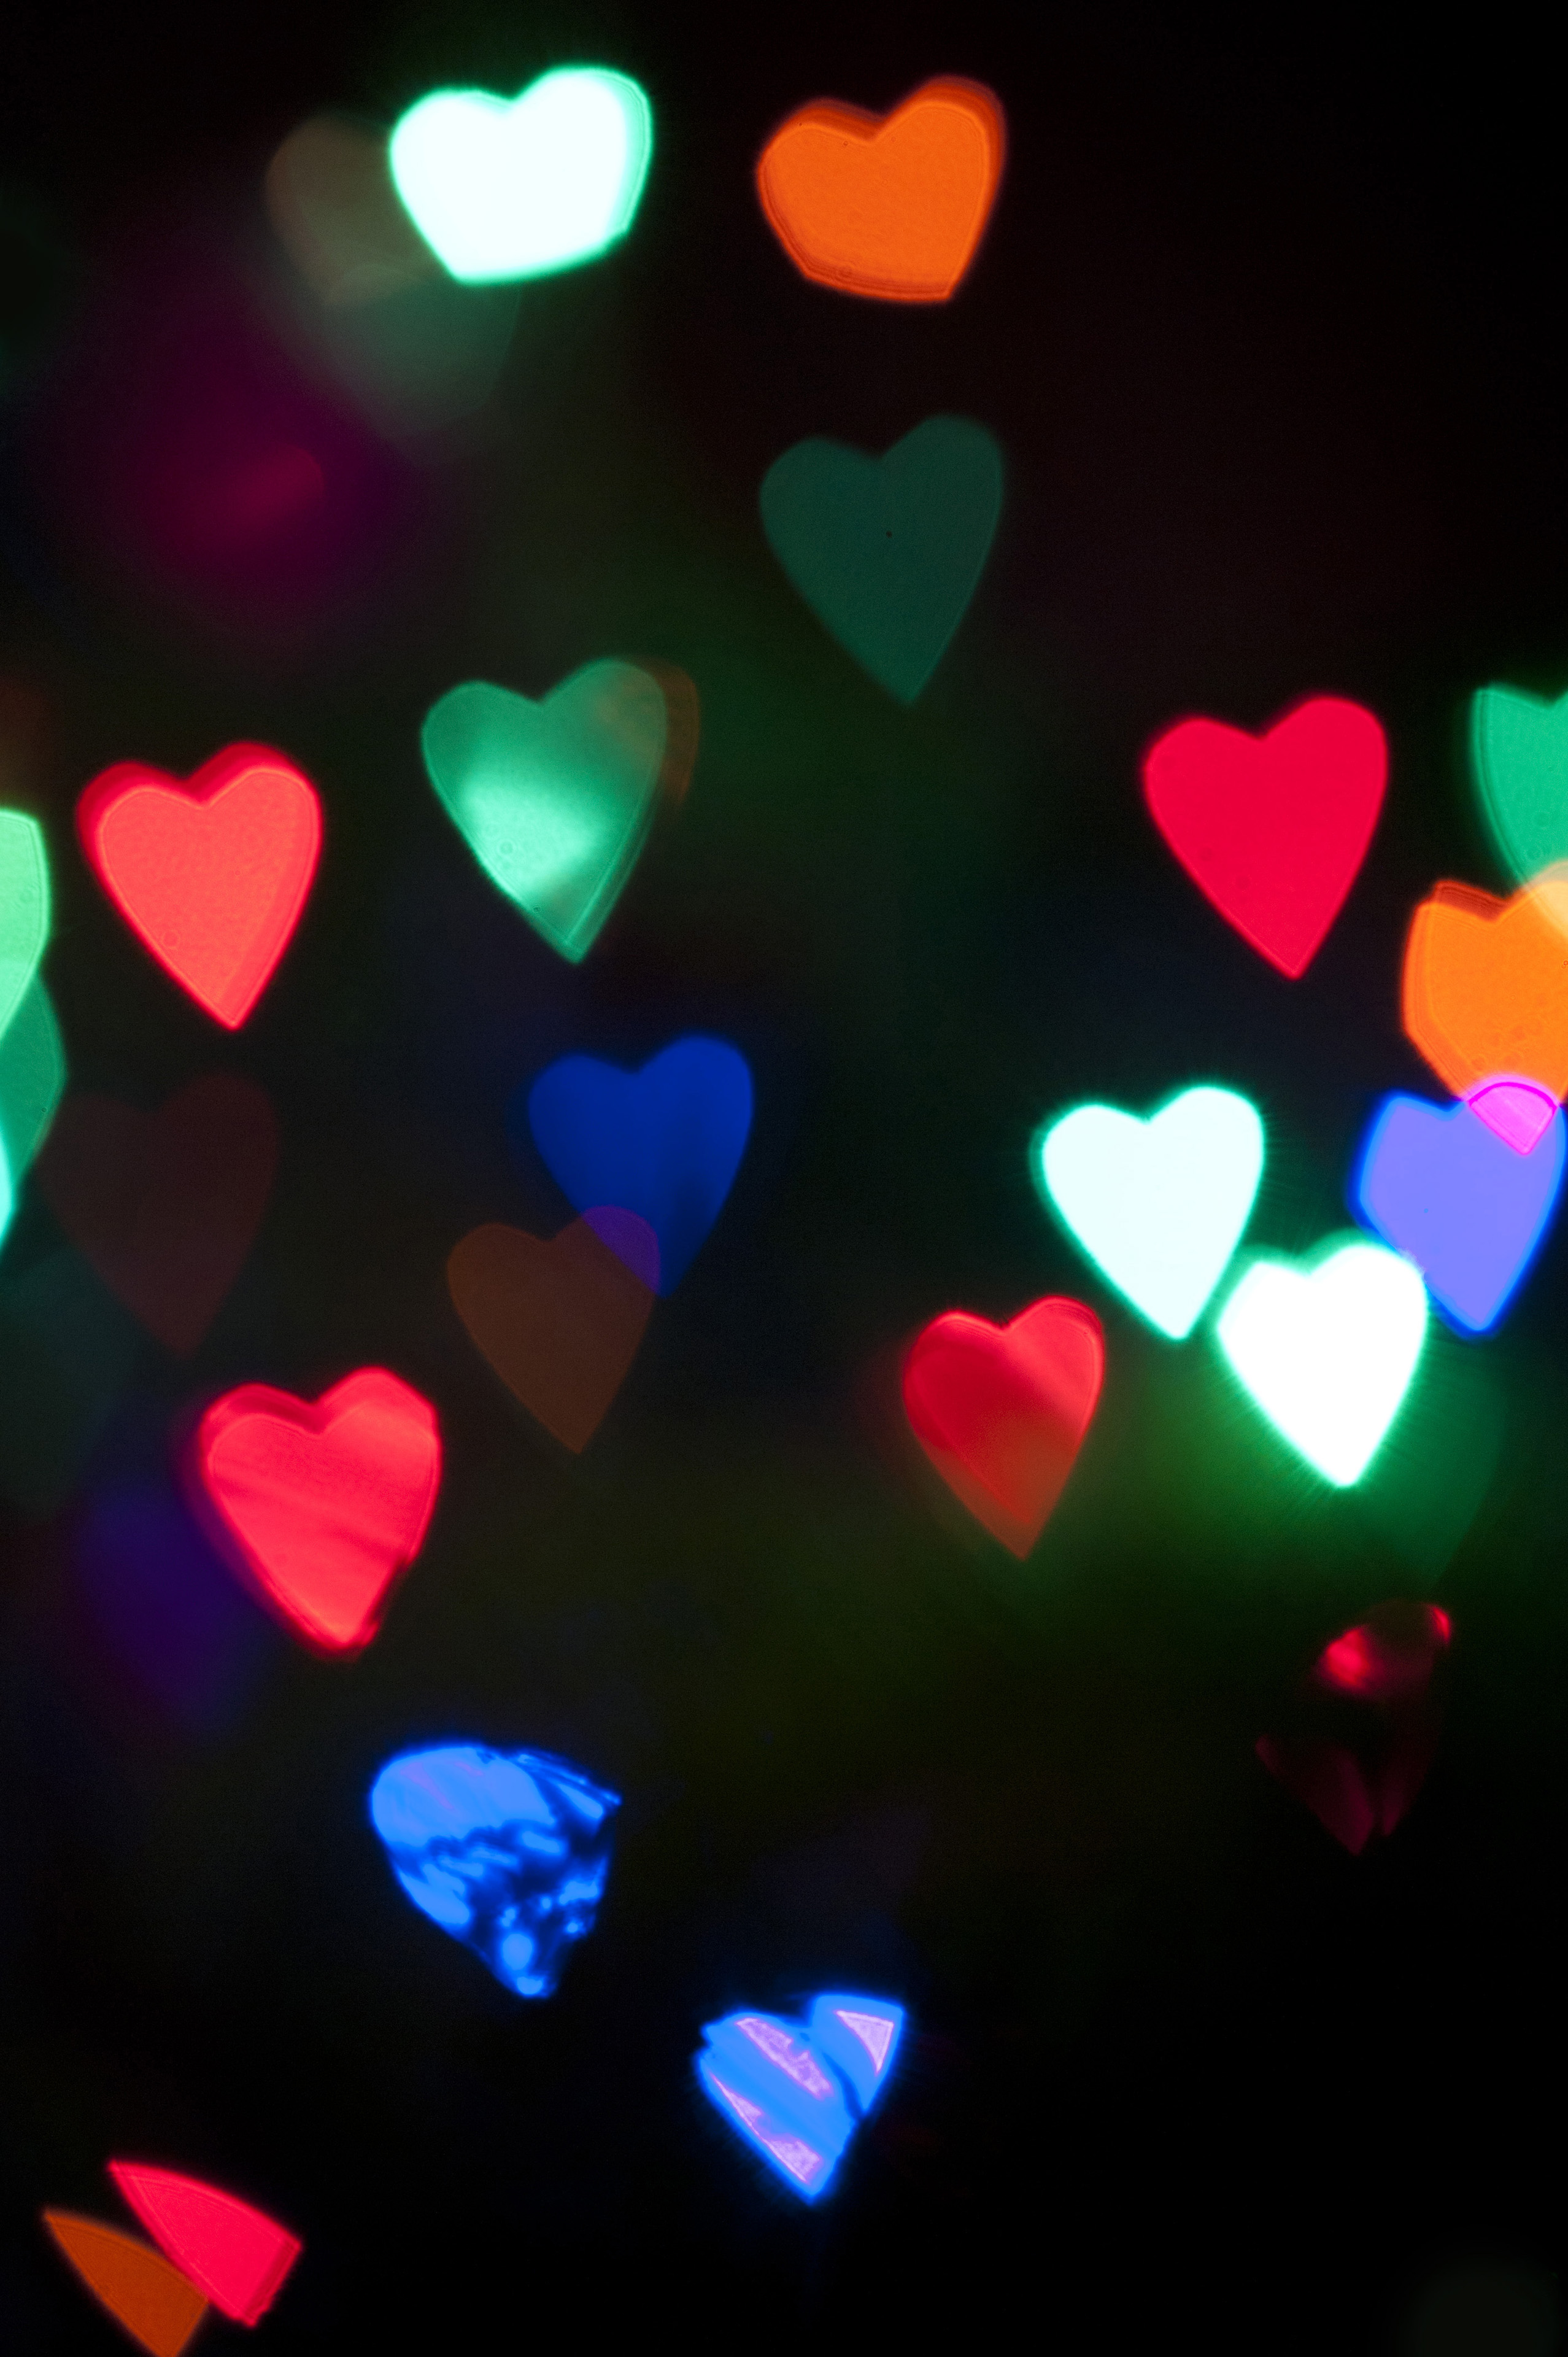 Background of colorful heart-shaped party lights glowing in the darkness at a special event, wedding or Christmas